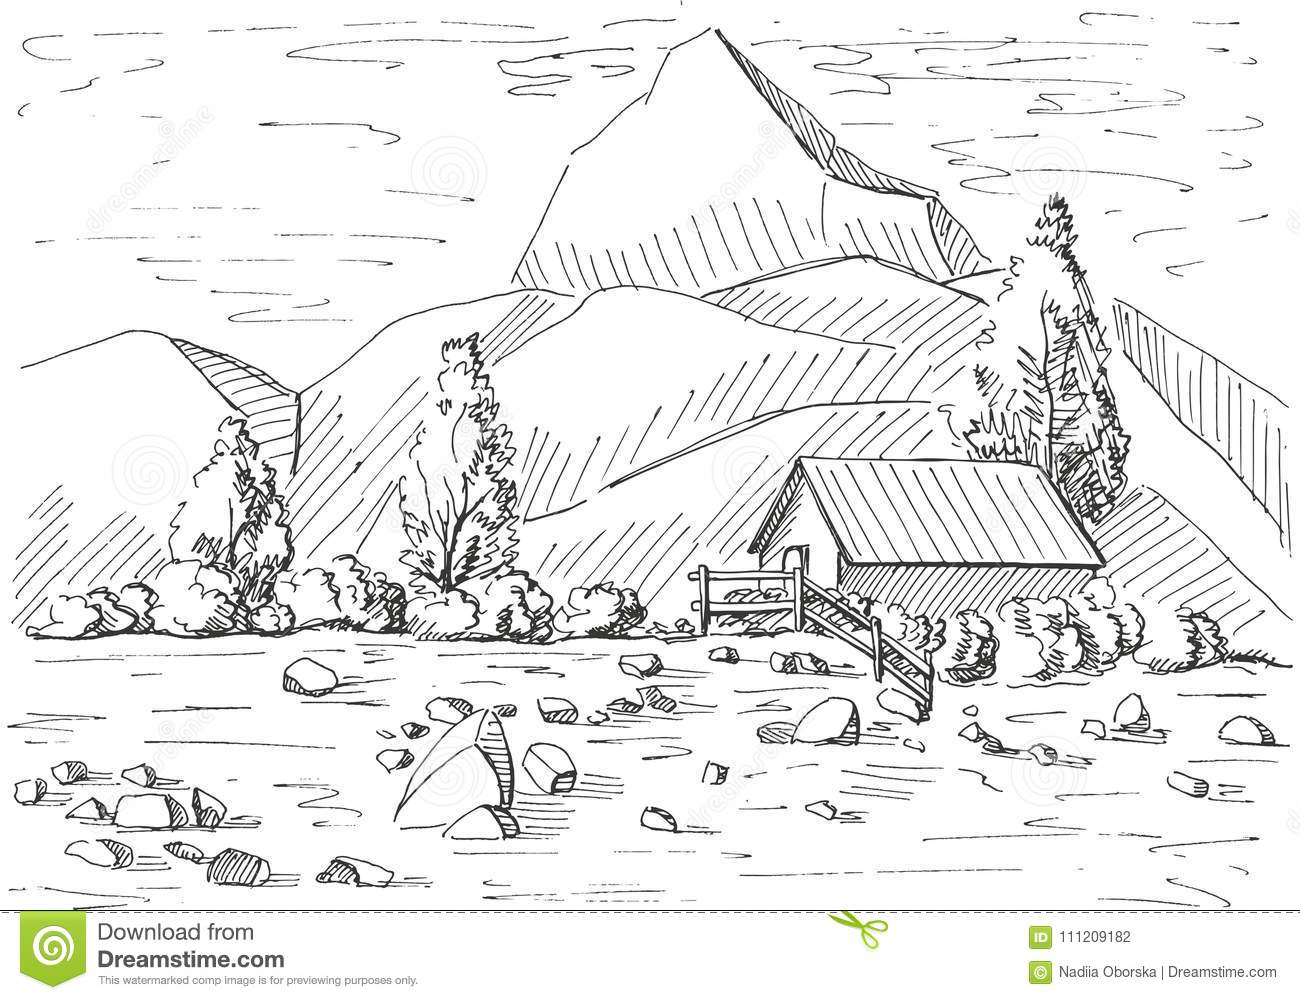 Hand drawn mountain landscape. House on a background of mountains. Vector illustration of a sketch style